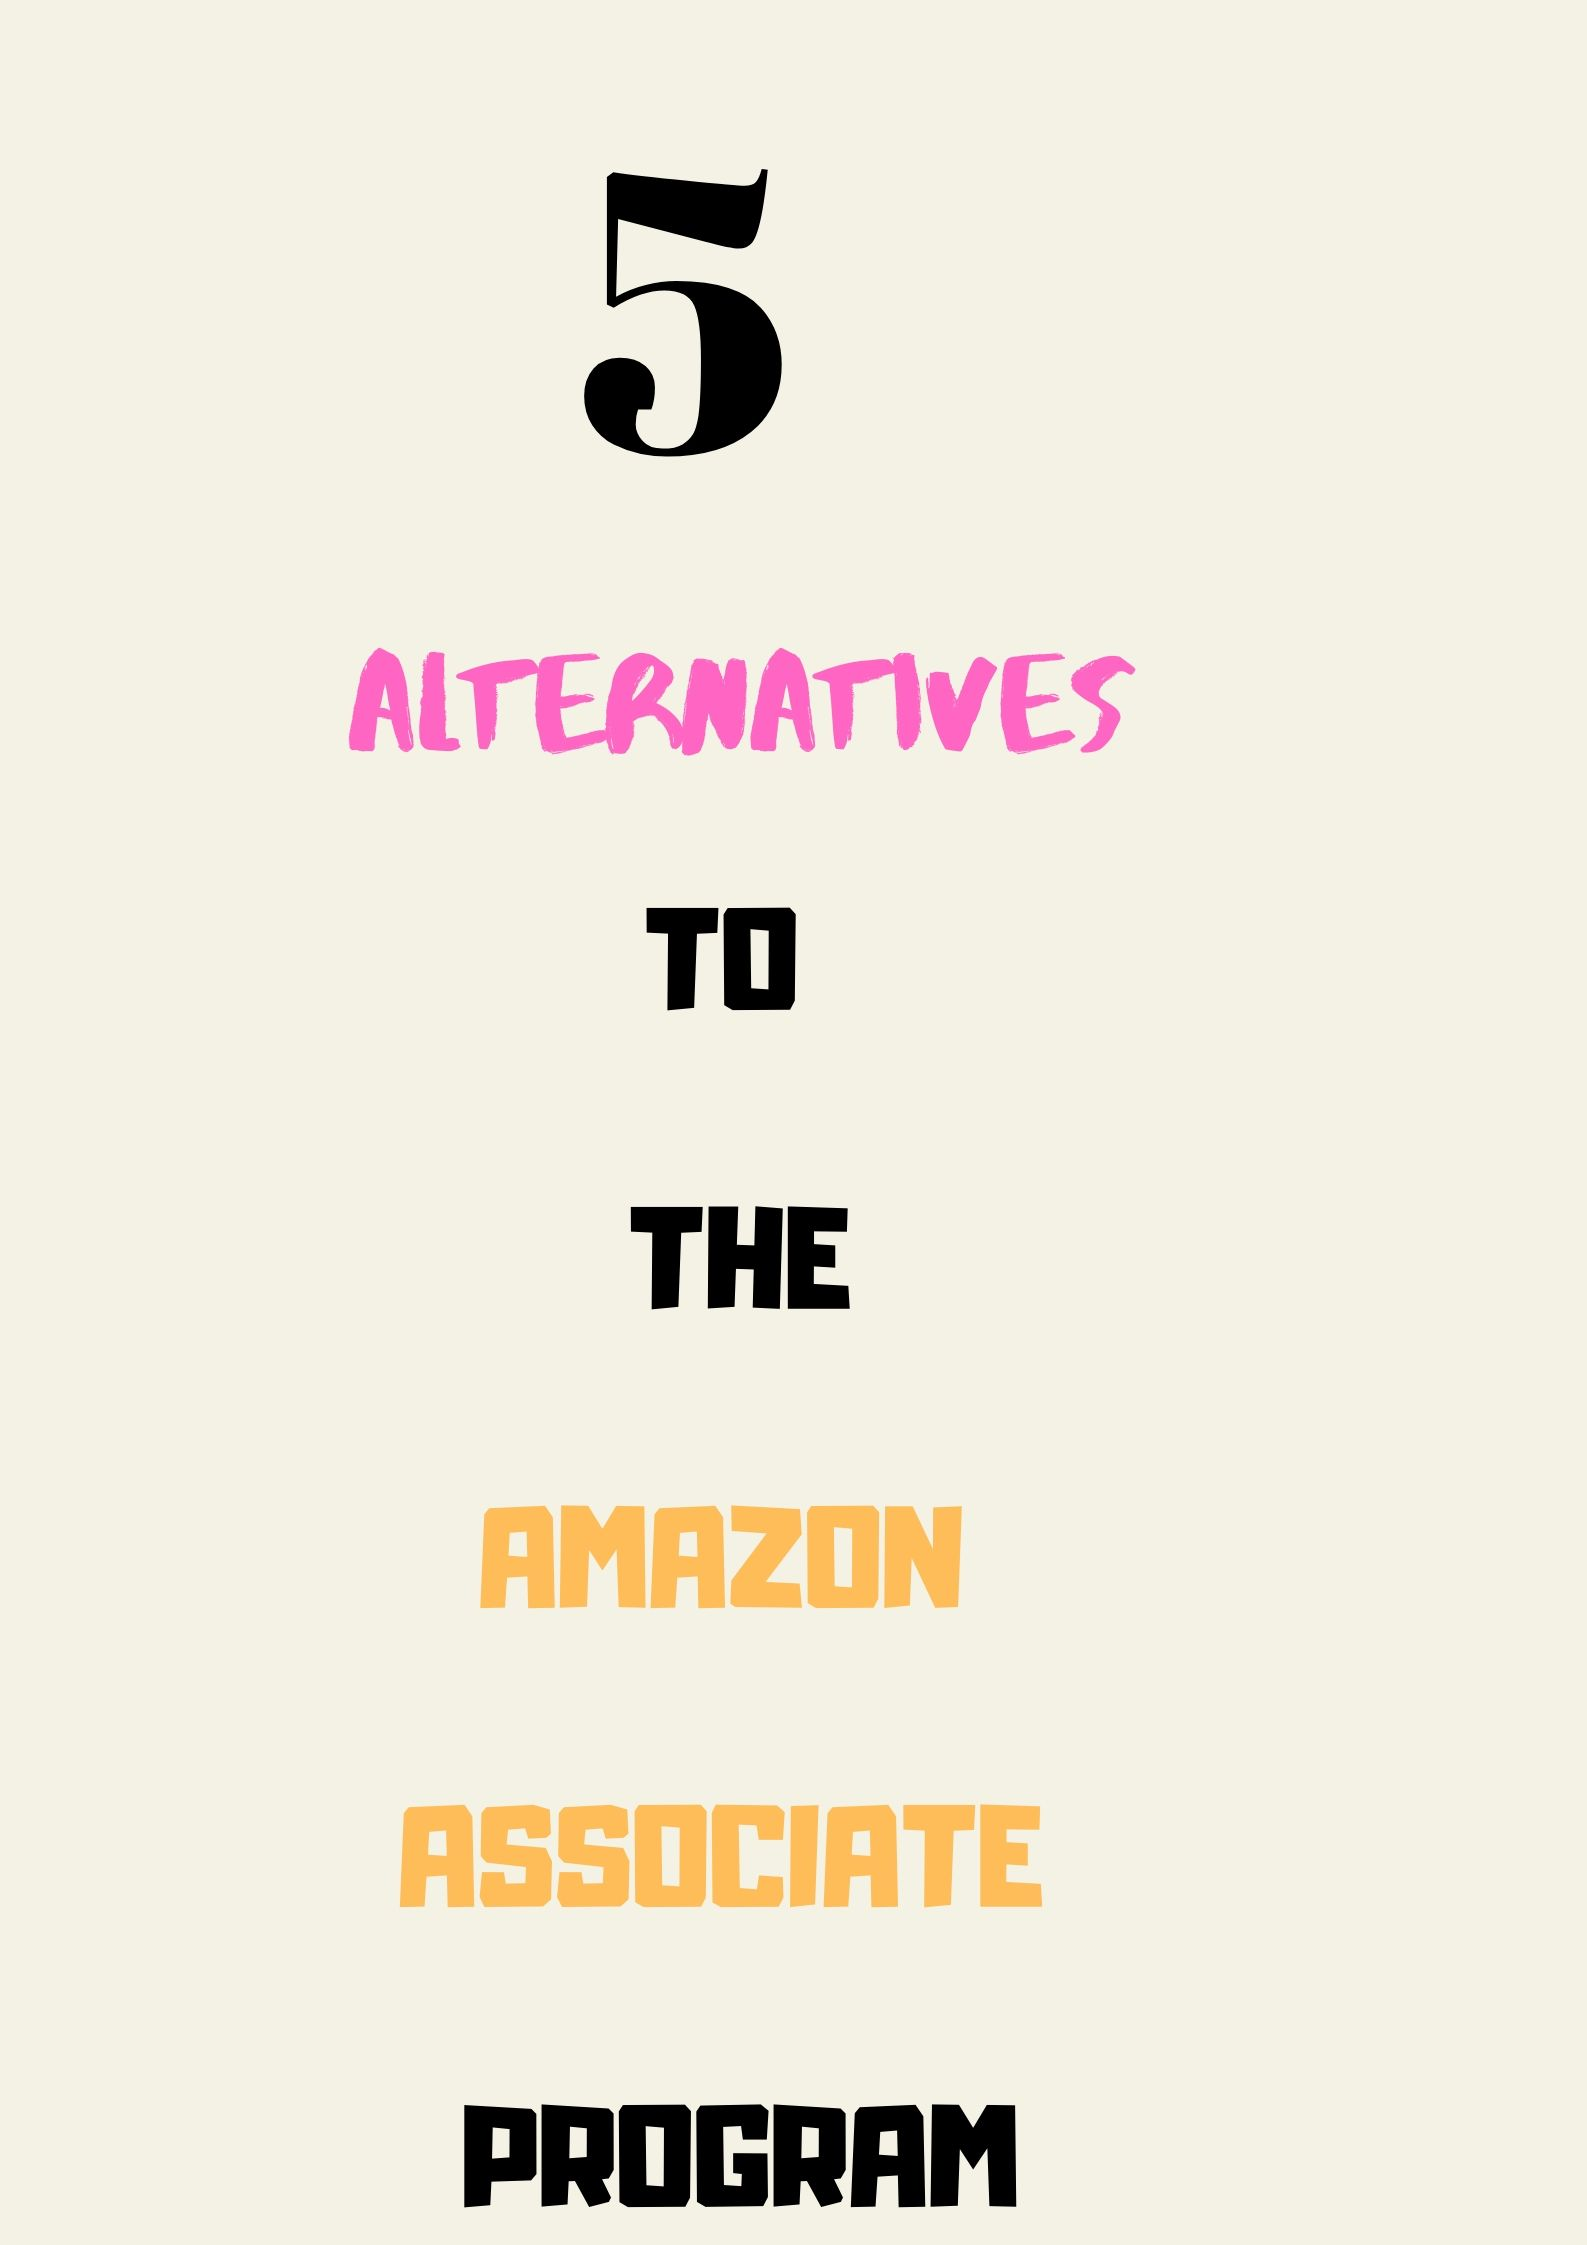 alternatives to amazon associate program